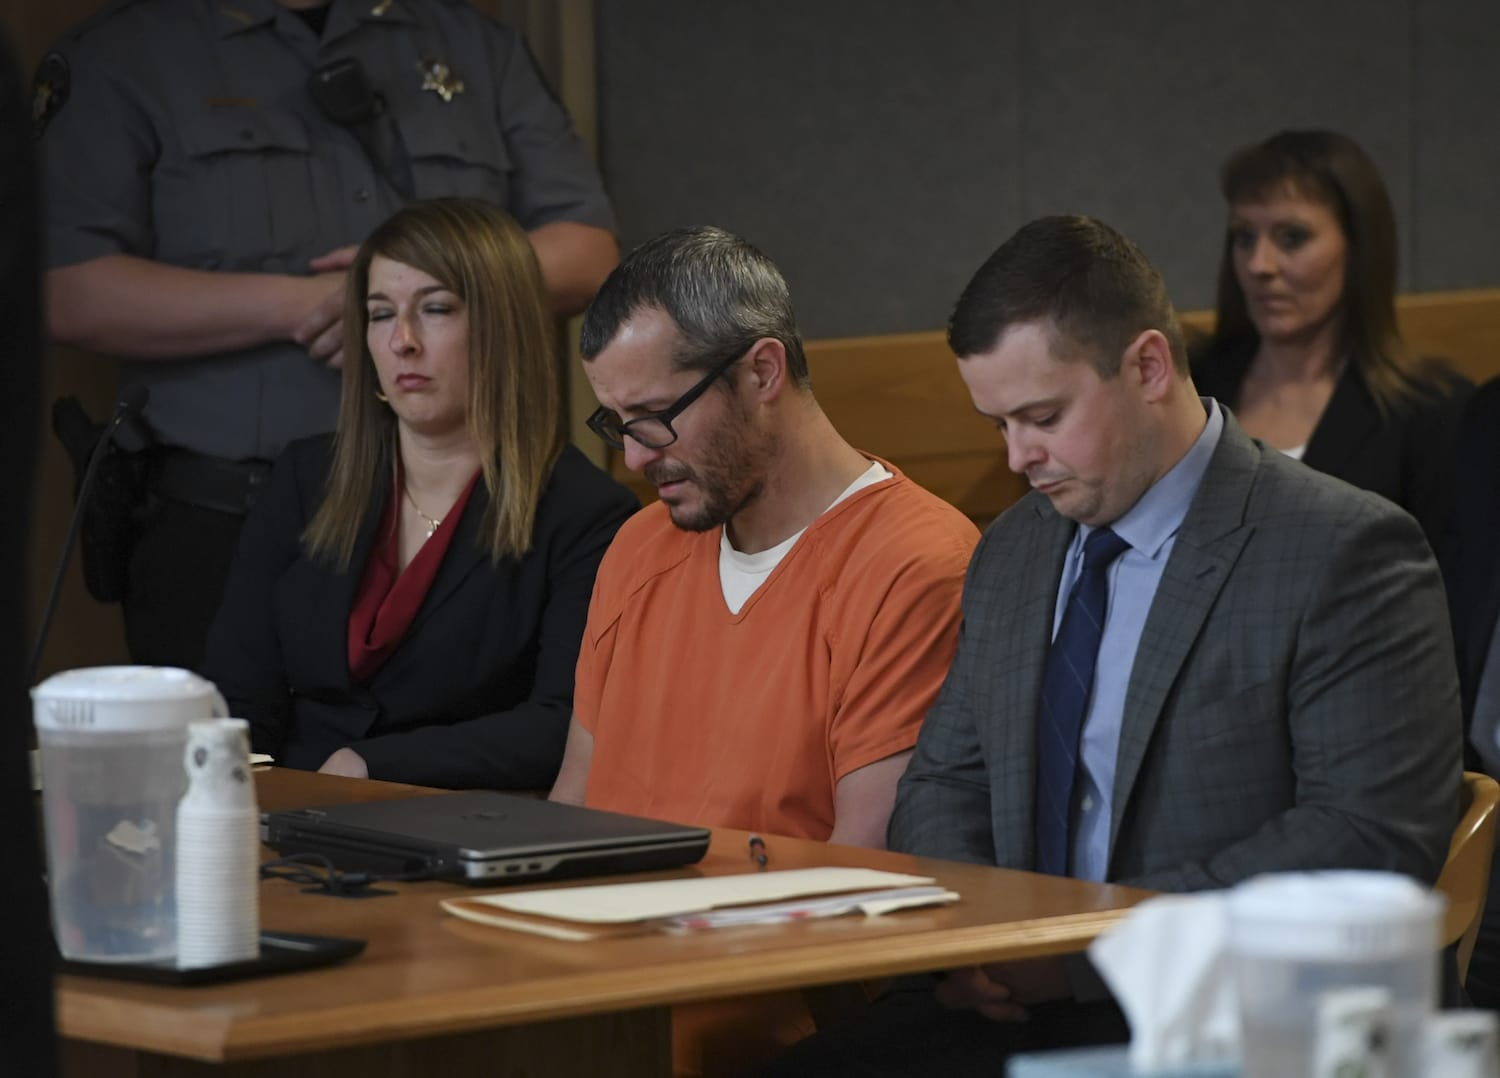 Christopher Watts sits in court for his sentencing hearing at the Weld County Courthouse on November 19, 2018 in Greeley, Colorado. Watts was sentenced to life in prison for murdering his pregnant wife, daughters. (Photo by RJ Sangosti/The Denver Post via Getty Images)